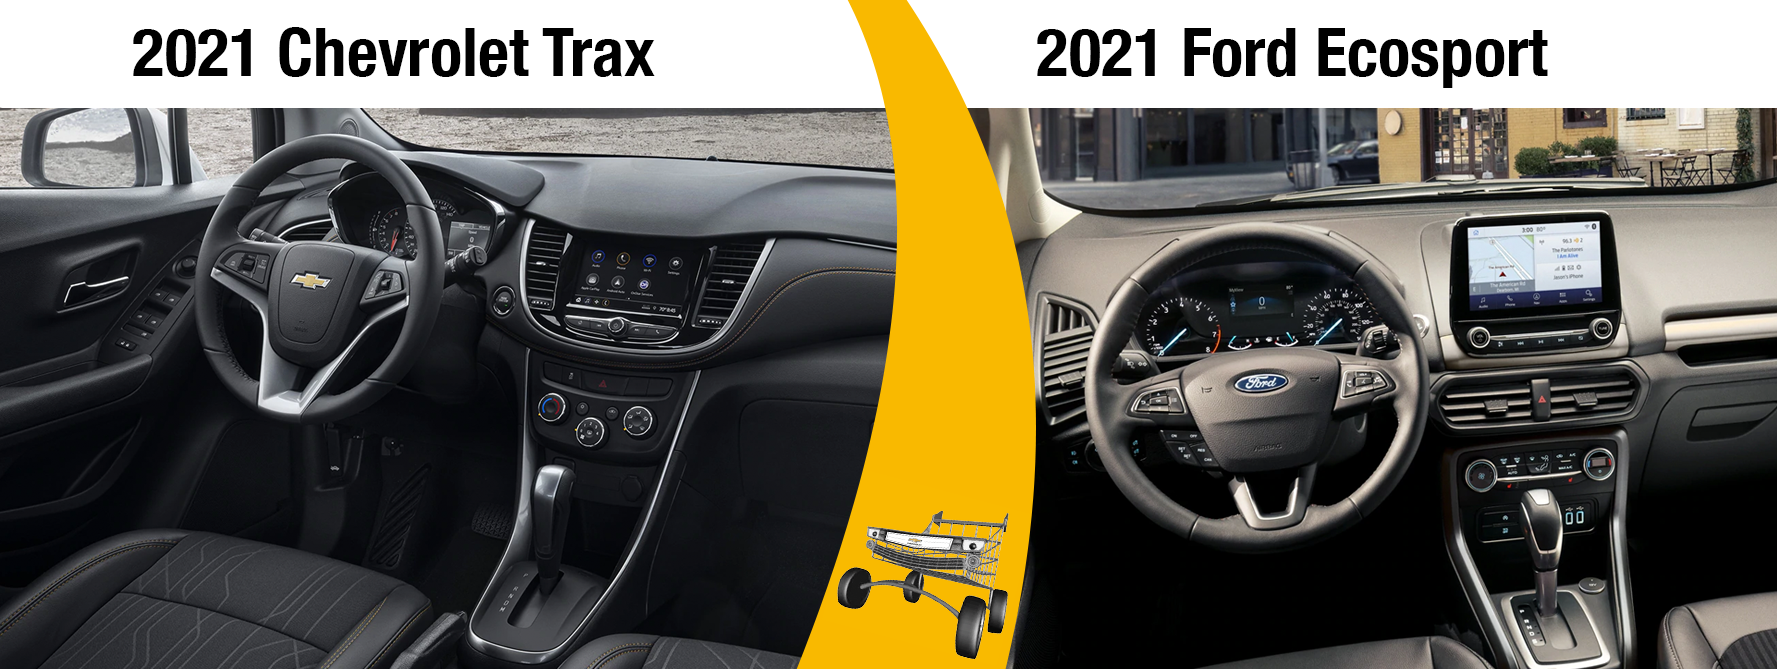 2021 Chevy Trax vs 2021 EcoSport Performance and Tech